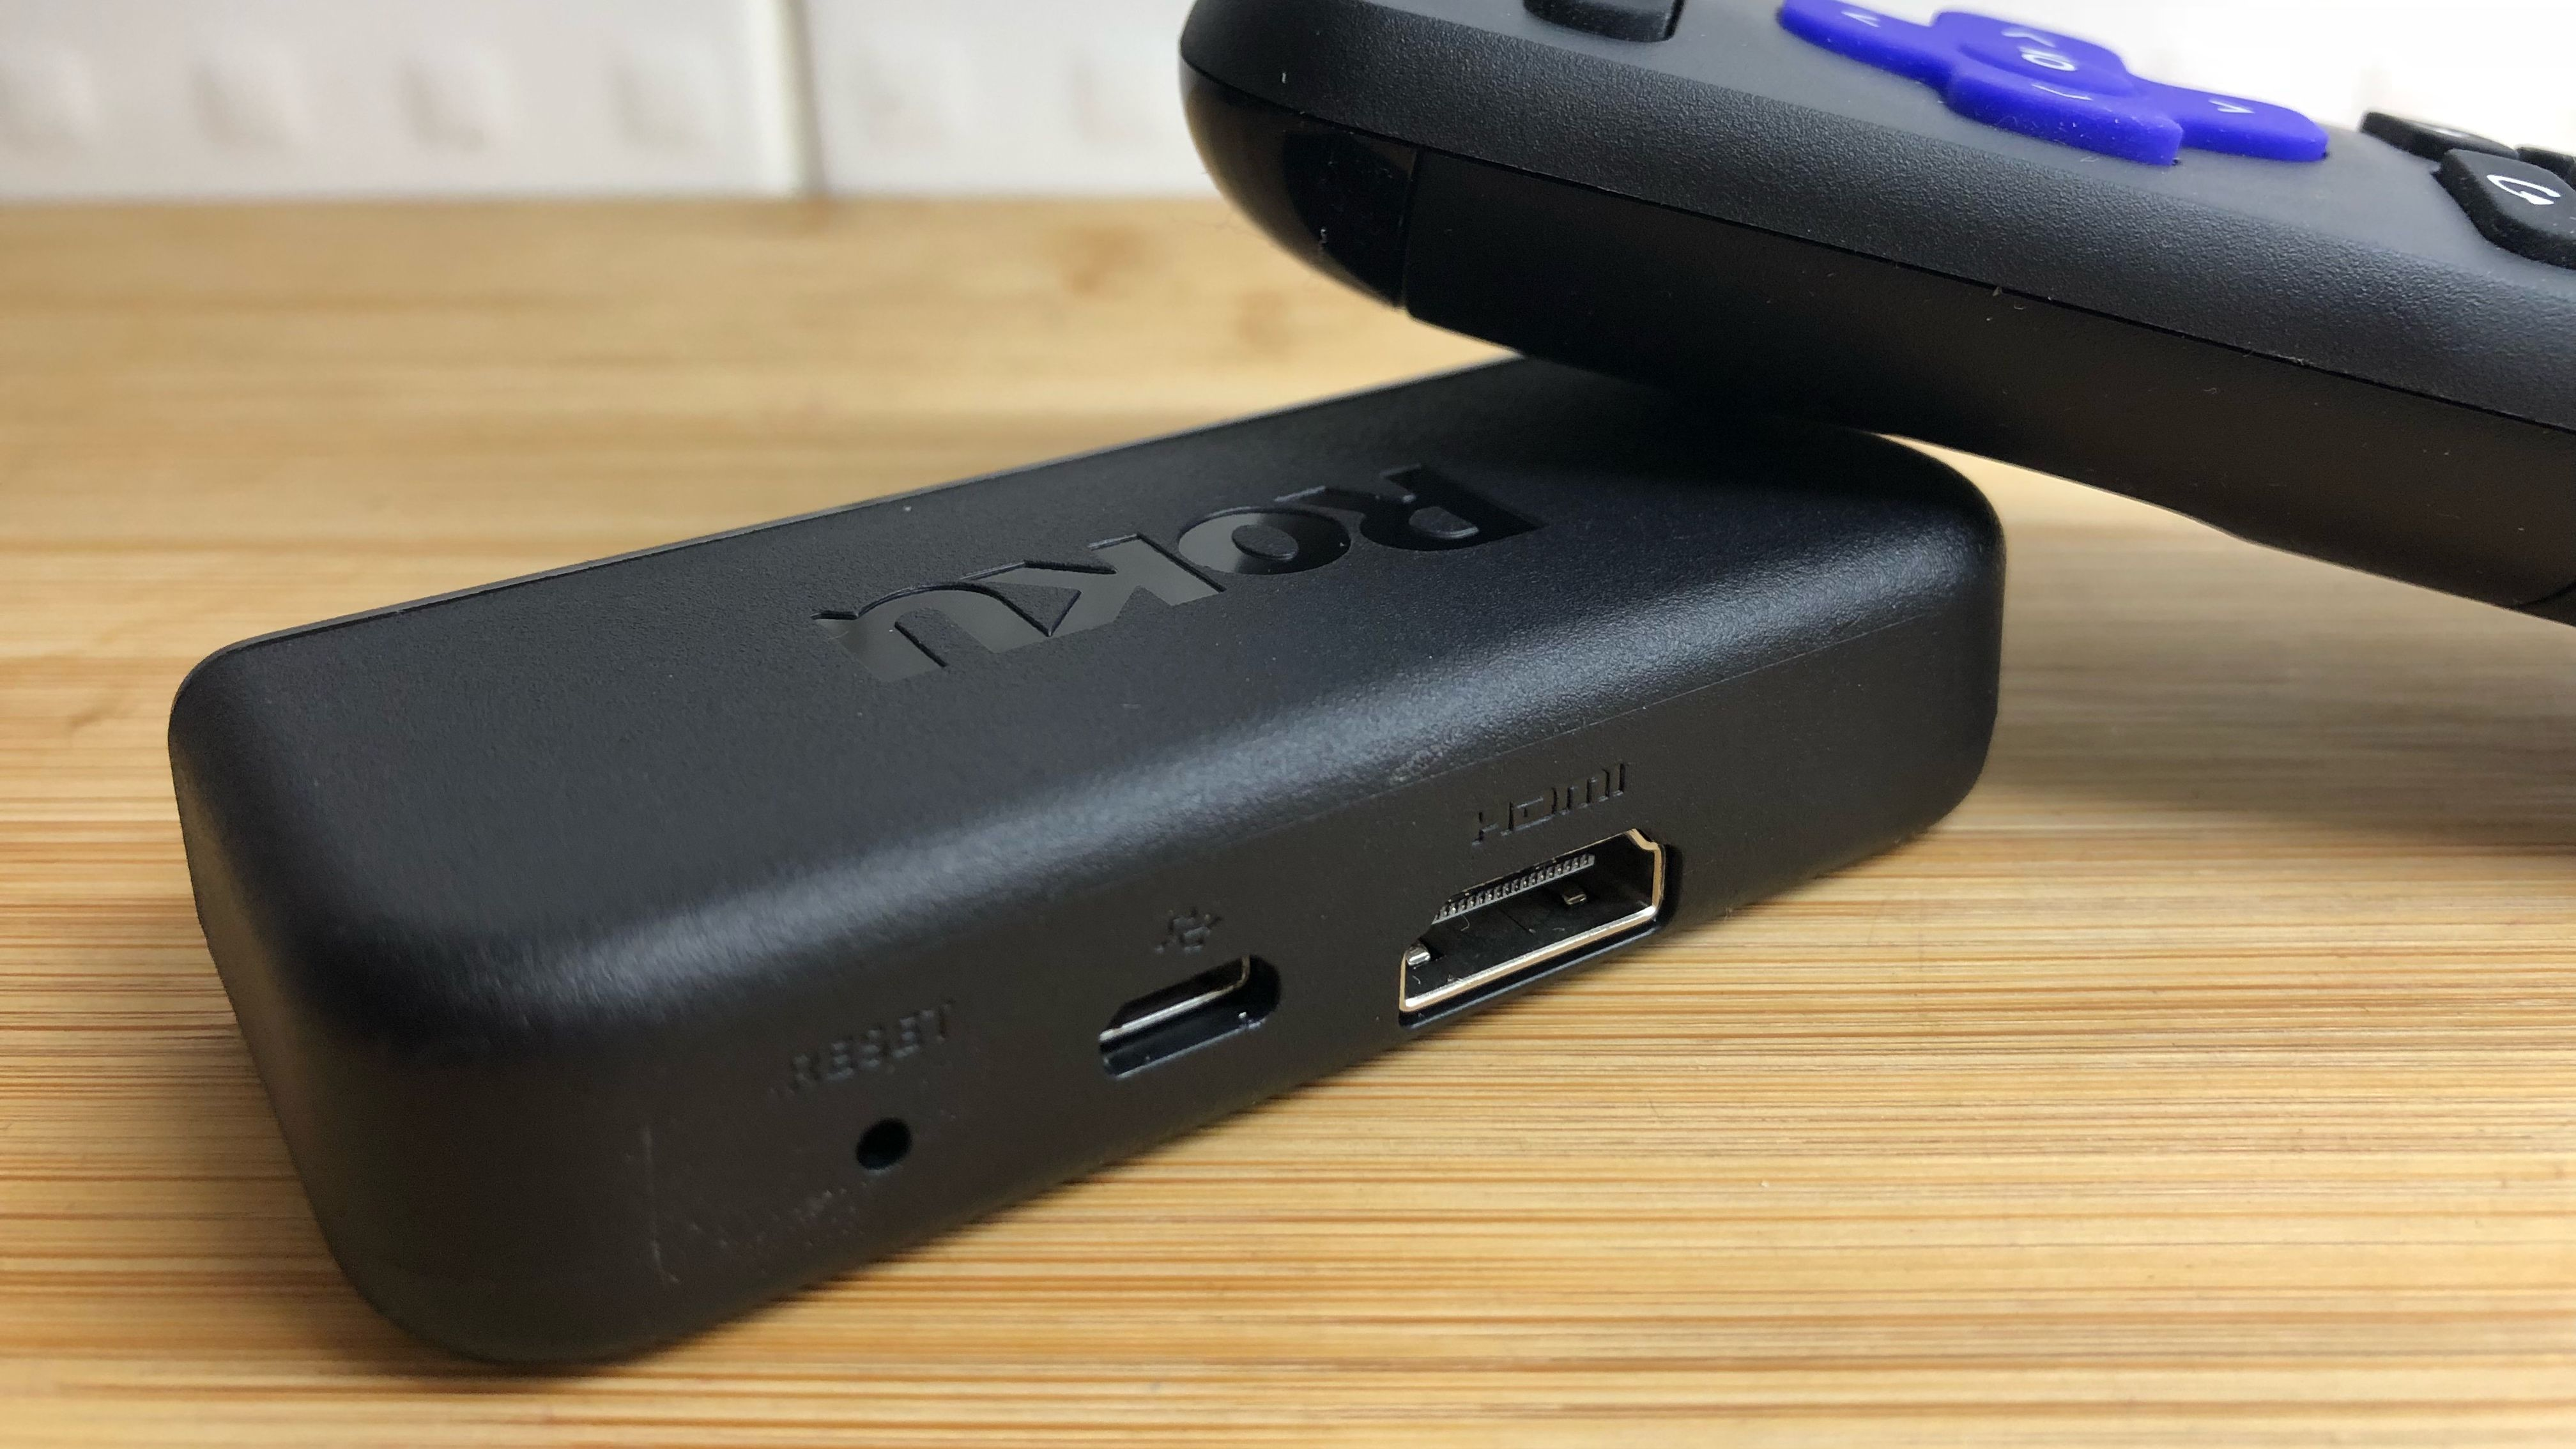 Roku is very simple to setup and easy to use. It comes